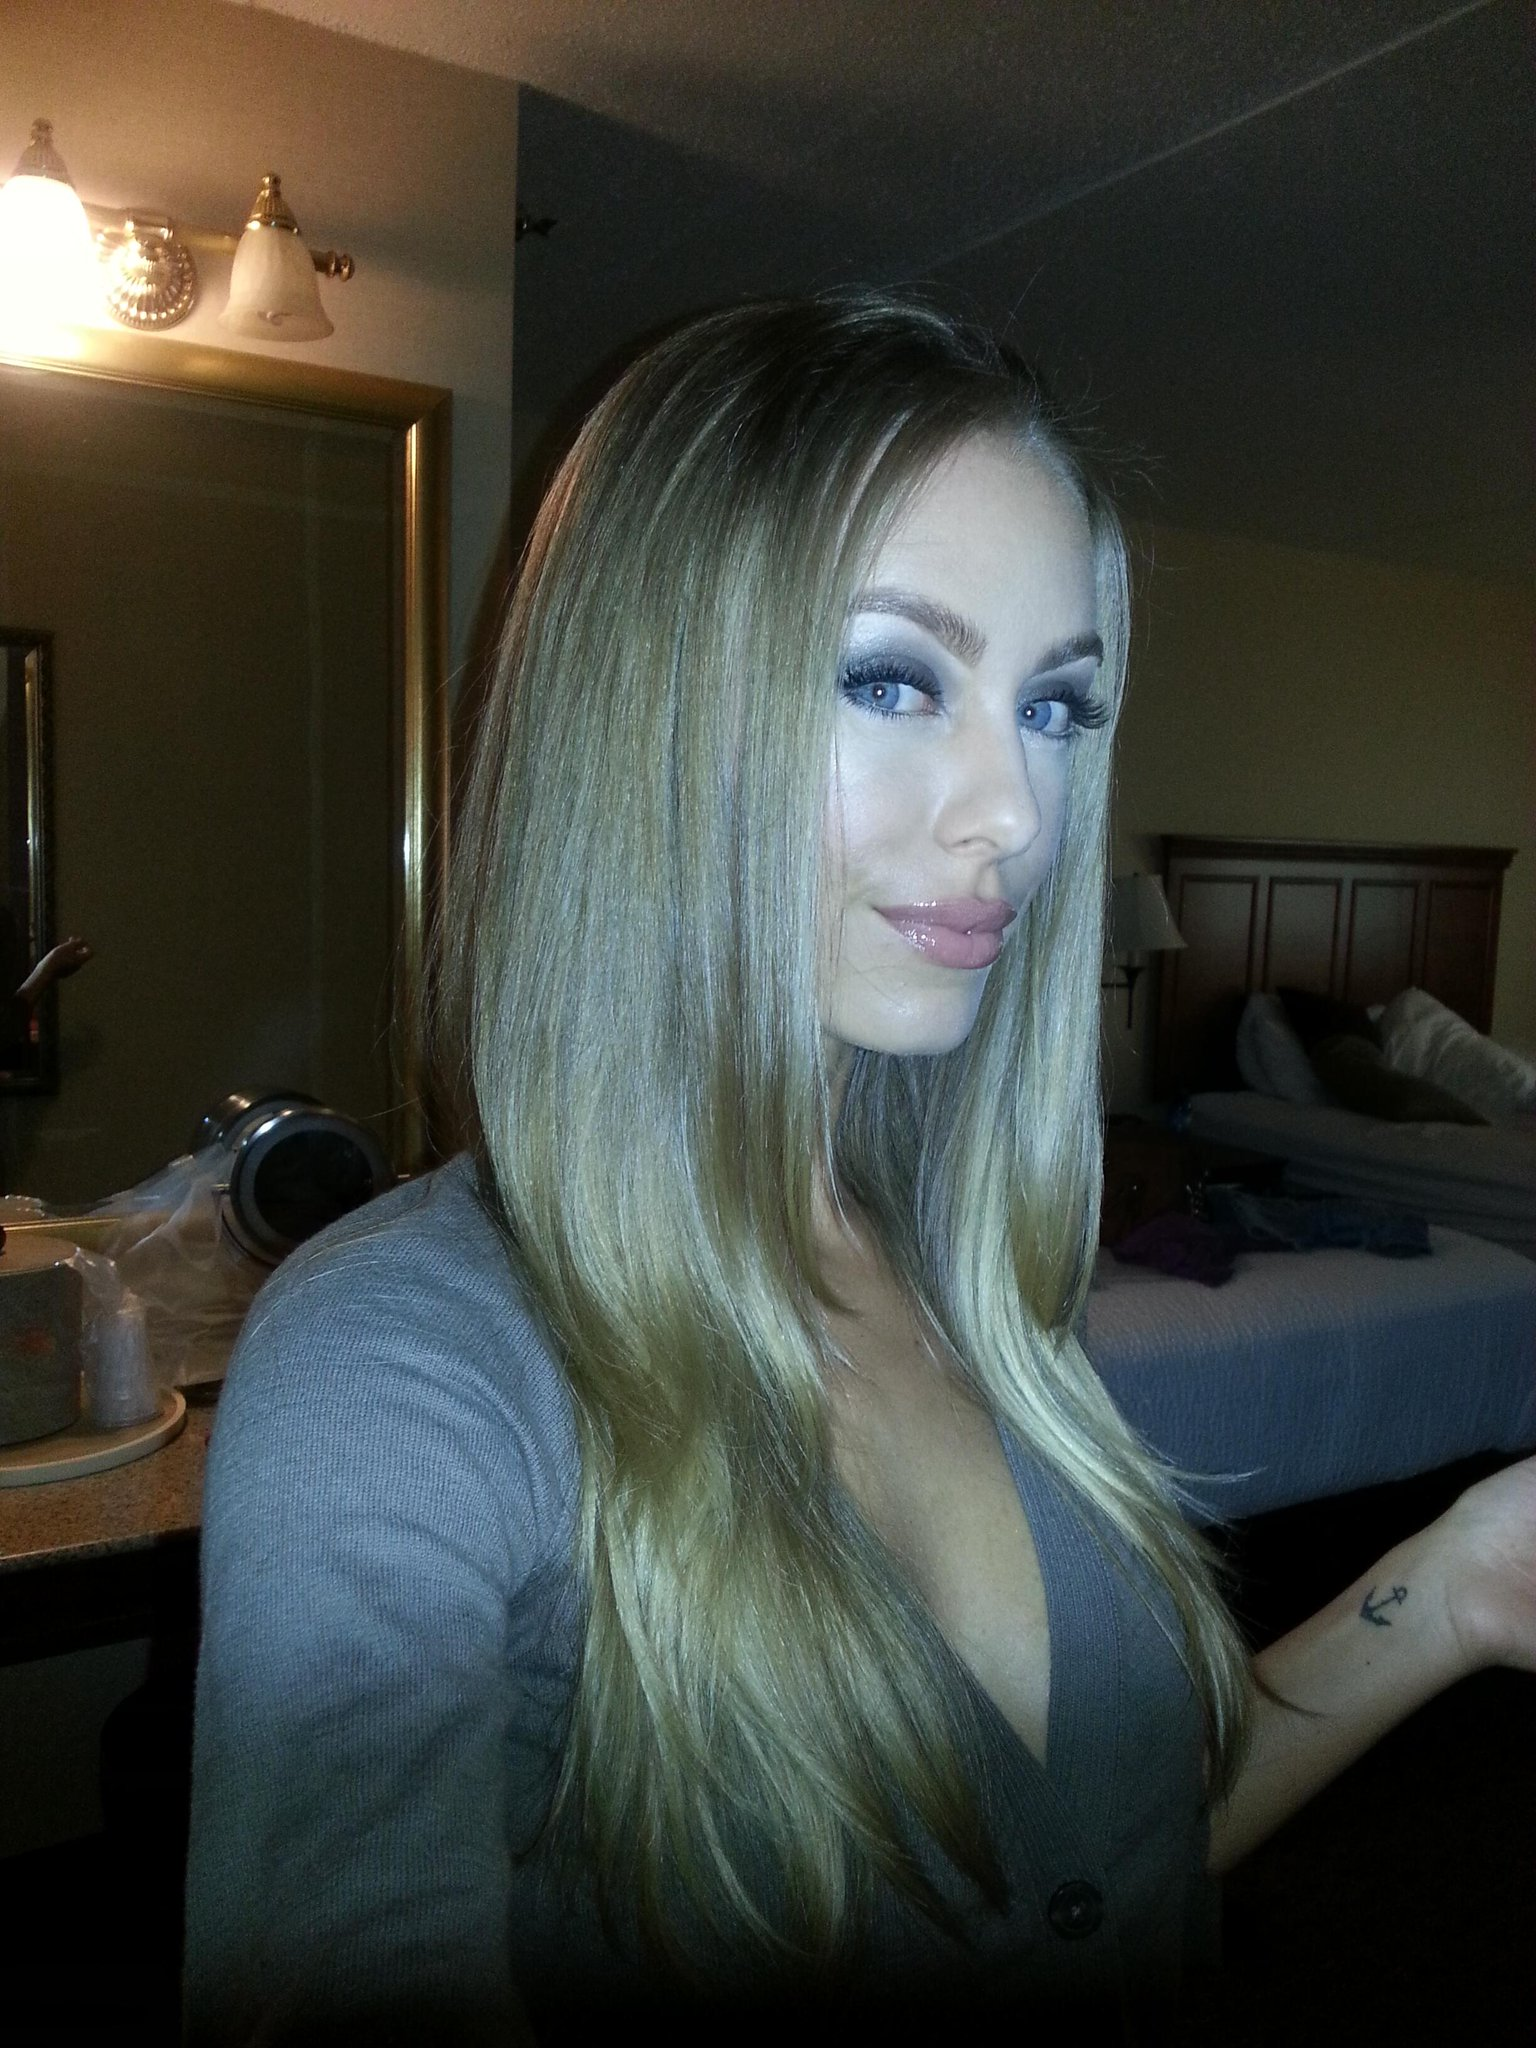 nicole aniston on twitter good morning last day in sturgis hope you 39 re having as productive. Black Bedroom Furniture Sets. Home Design Ideas